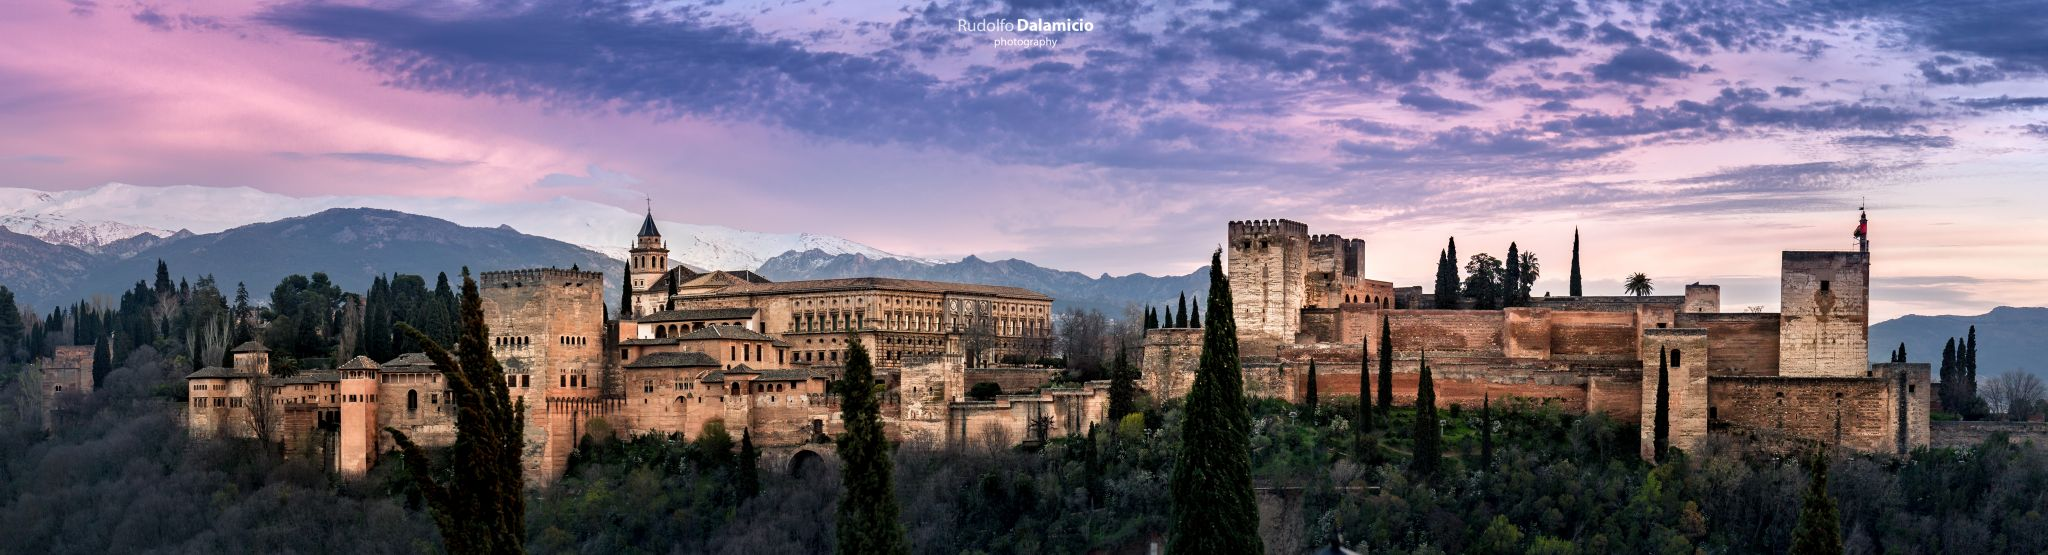 Alhambra Sunset Sky, Spain